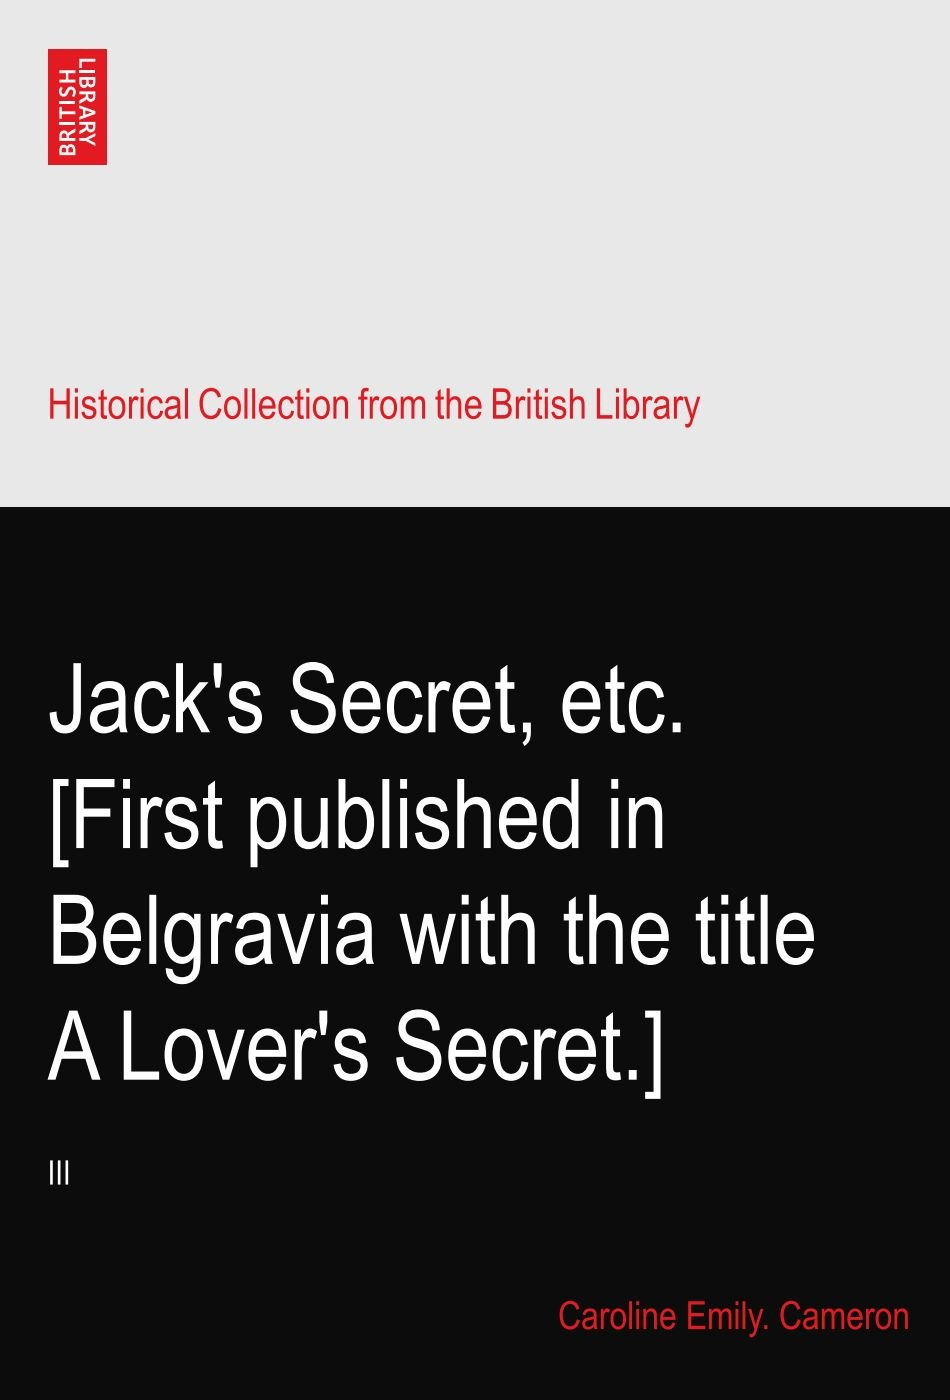 Download Jack's Secret, etc. [First published in Belgravia with the title A Lover's Secret.]: III PDF